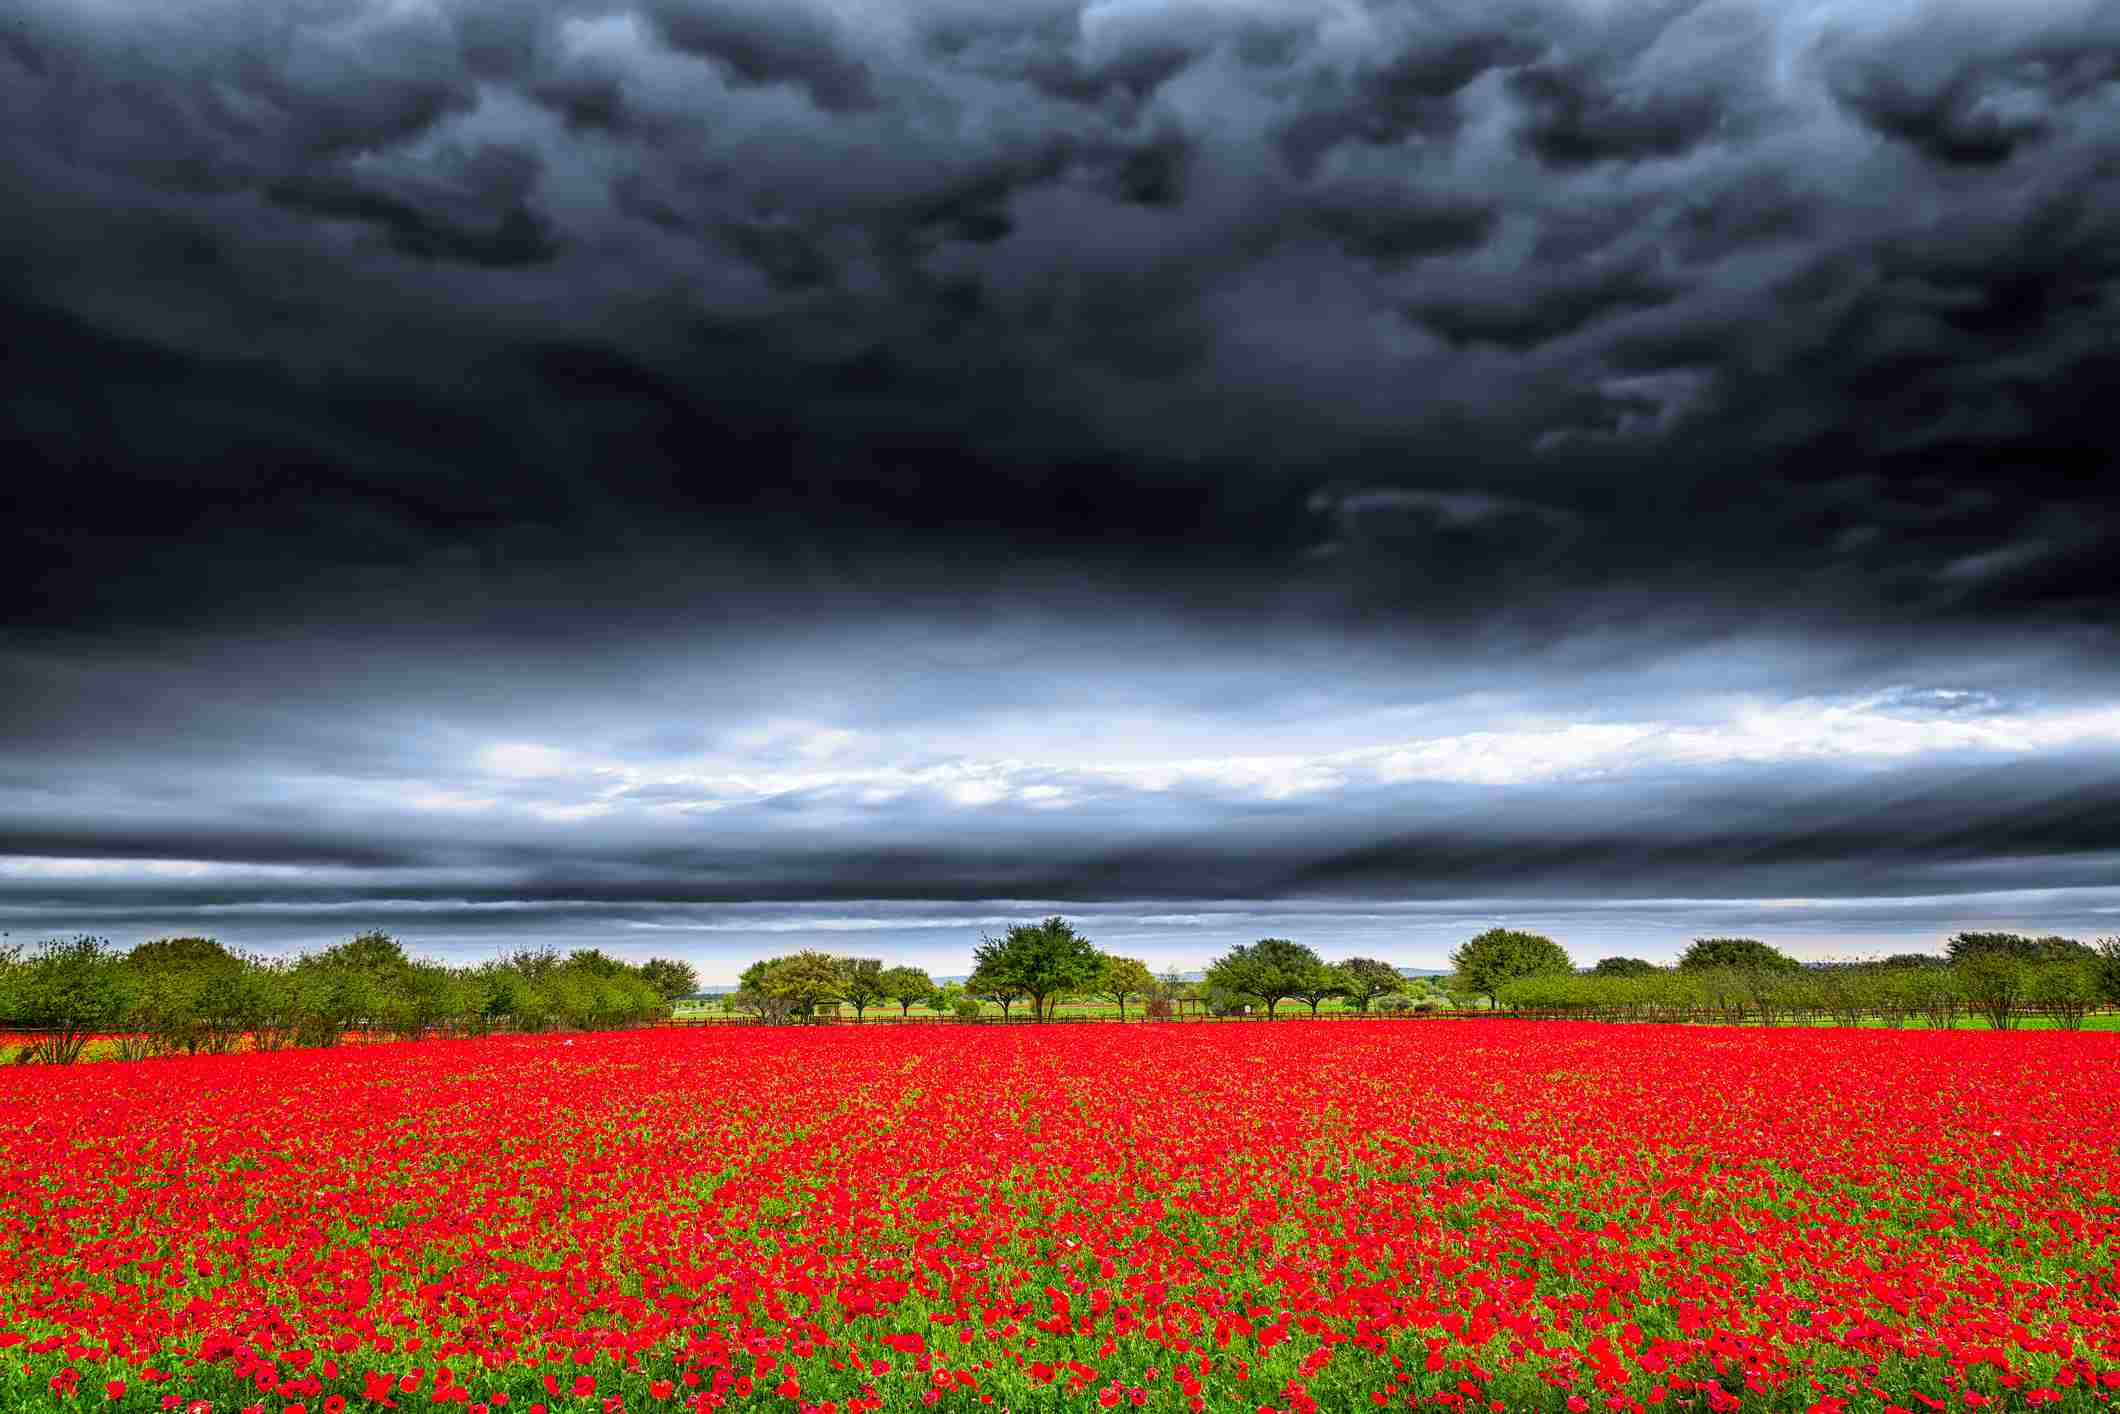 Brilliant red field of red corn poppies in the Texas hill country